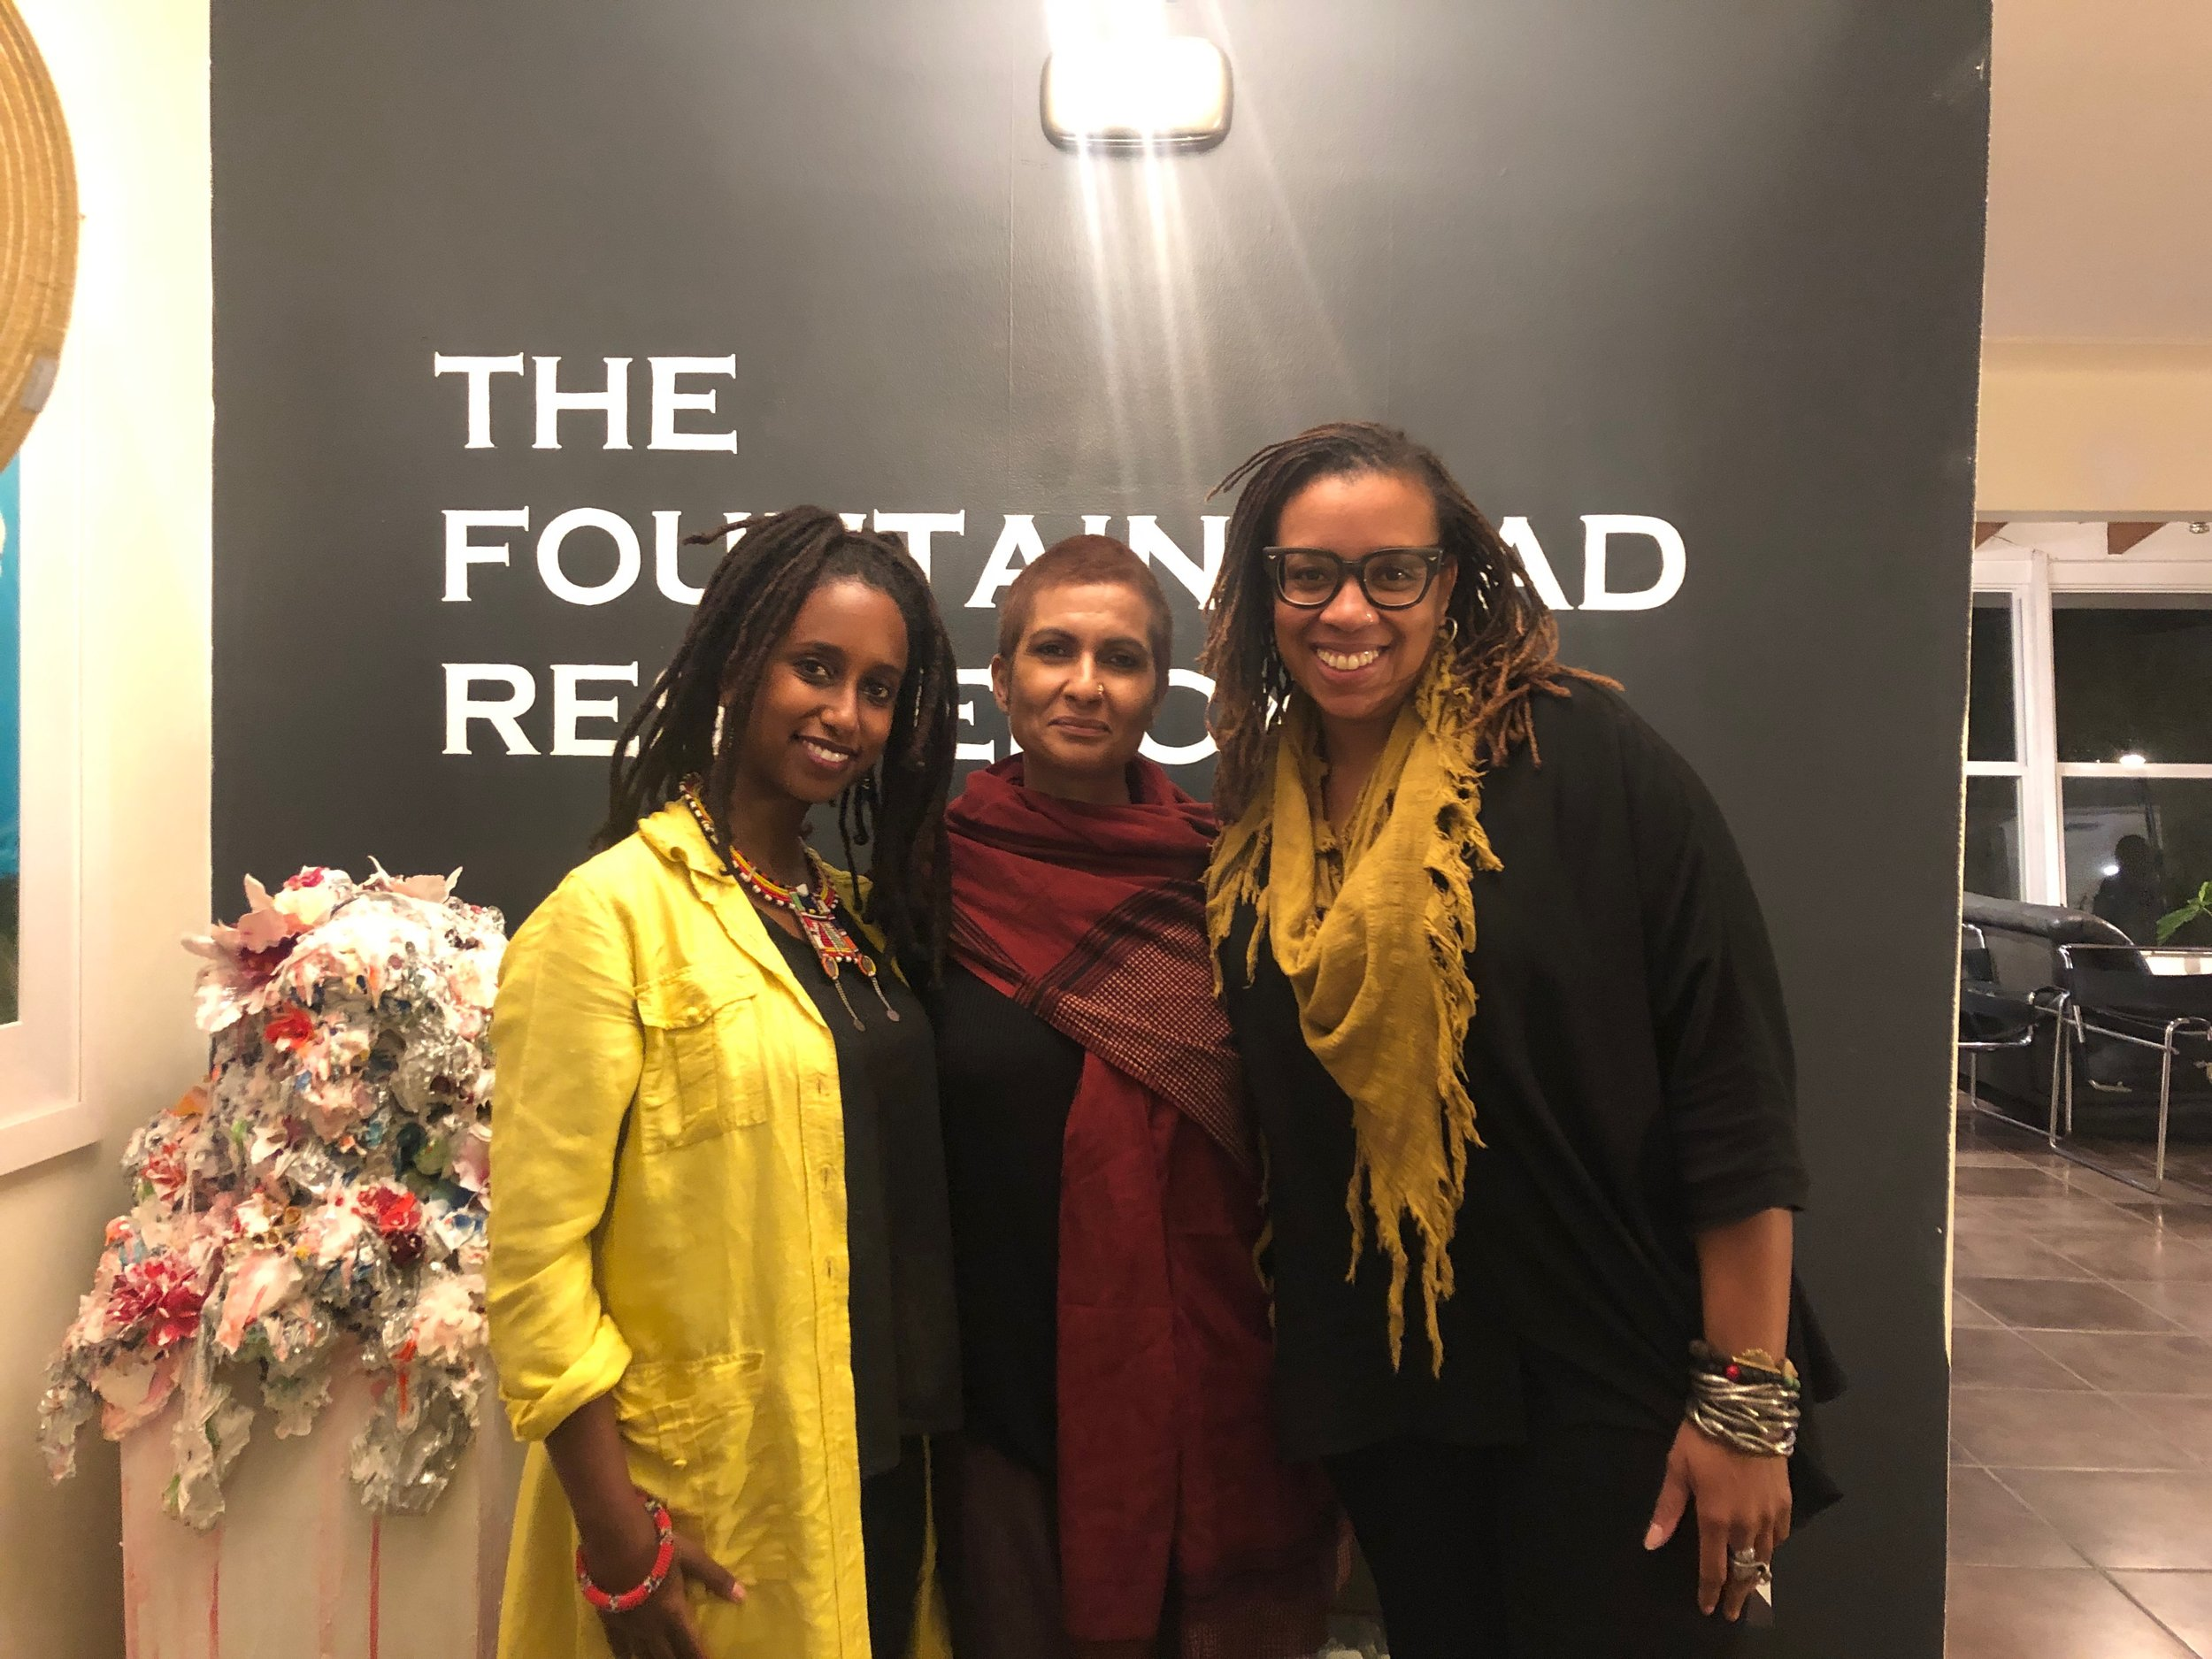 Pictured left to right; Helina Metaferia (Baltimore, MD), Renluka Maharaj (Boulder, CO), Alexandria Smith (Wellesley MA)